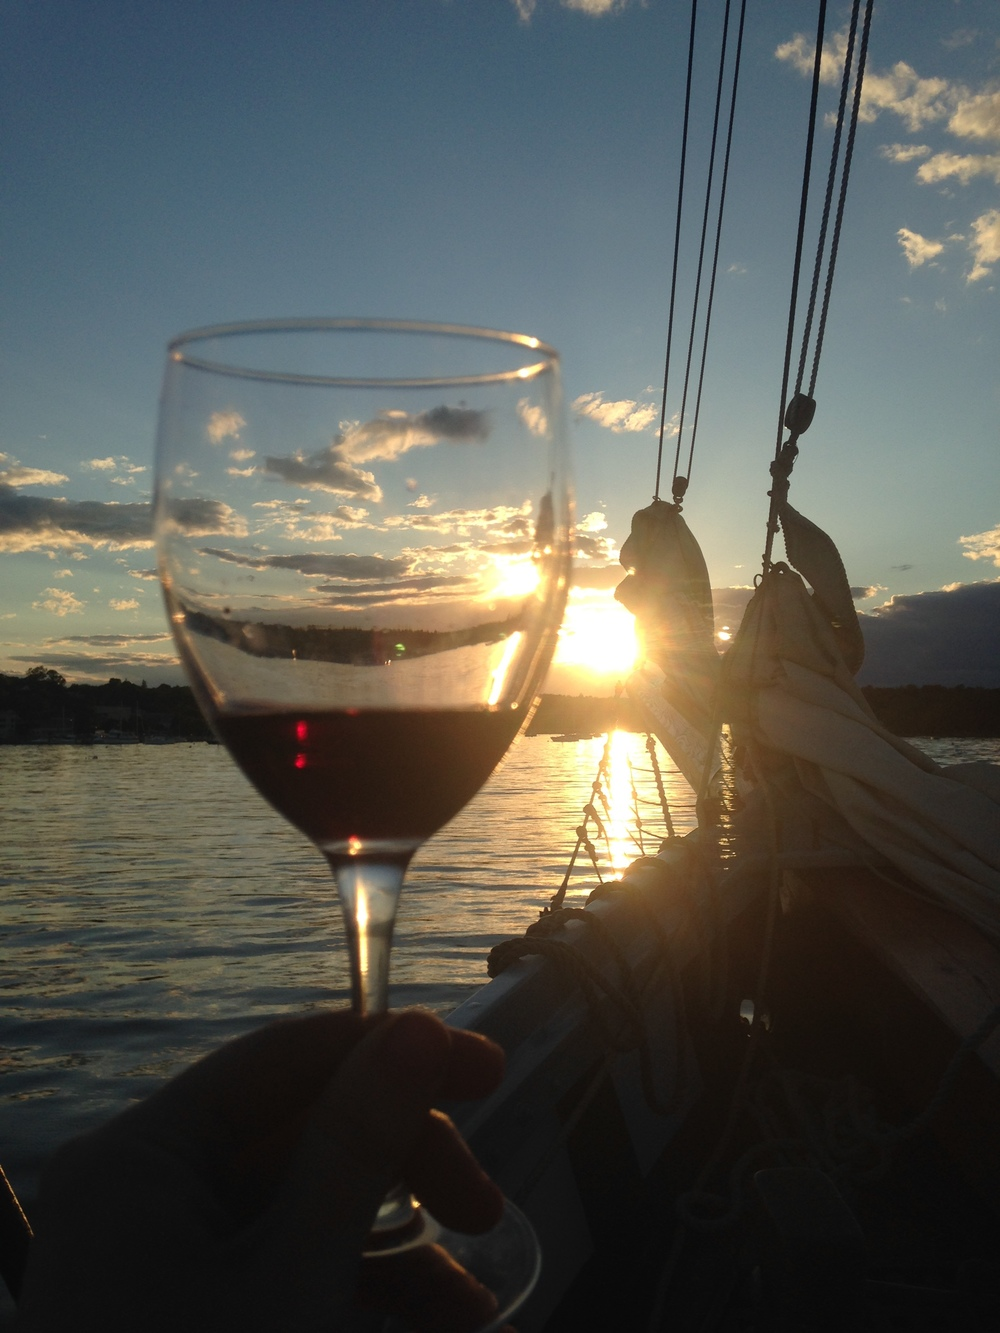 Sunset cruises are great with wine.